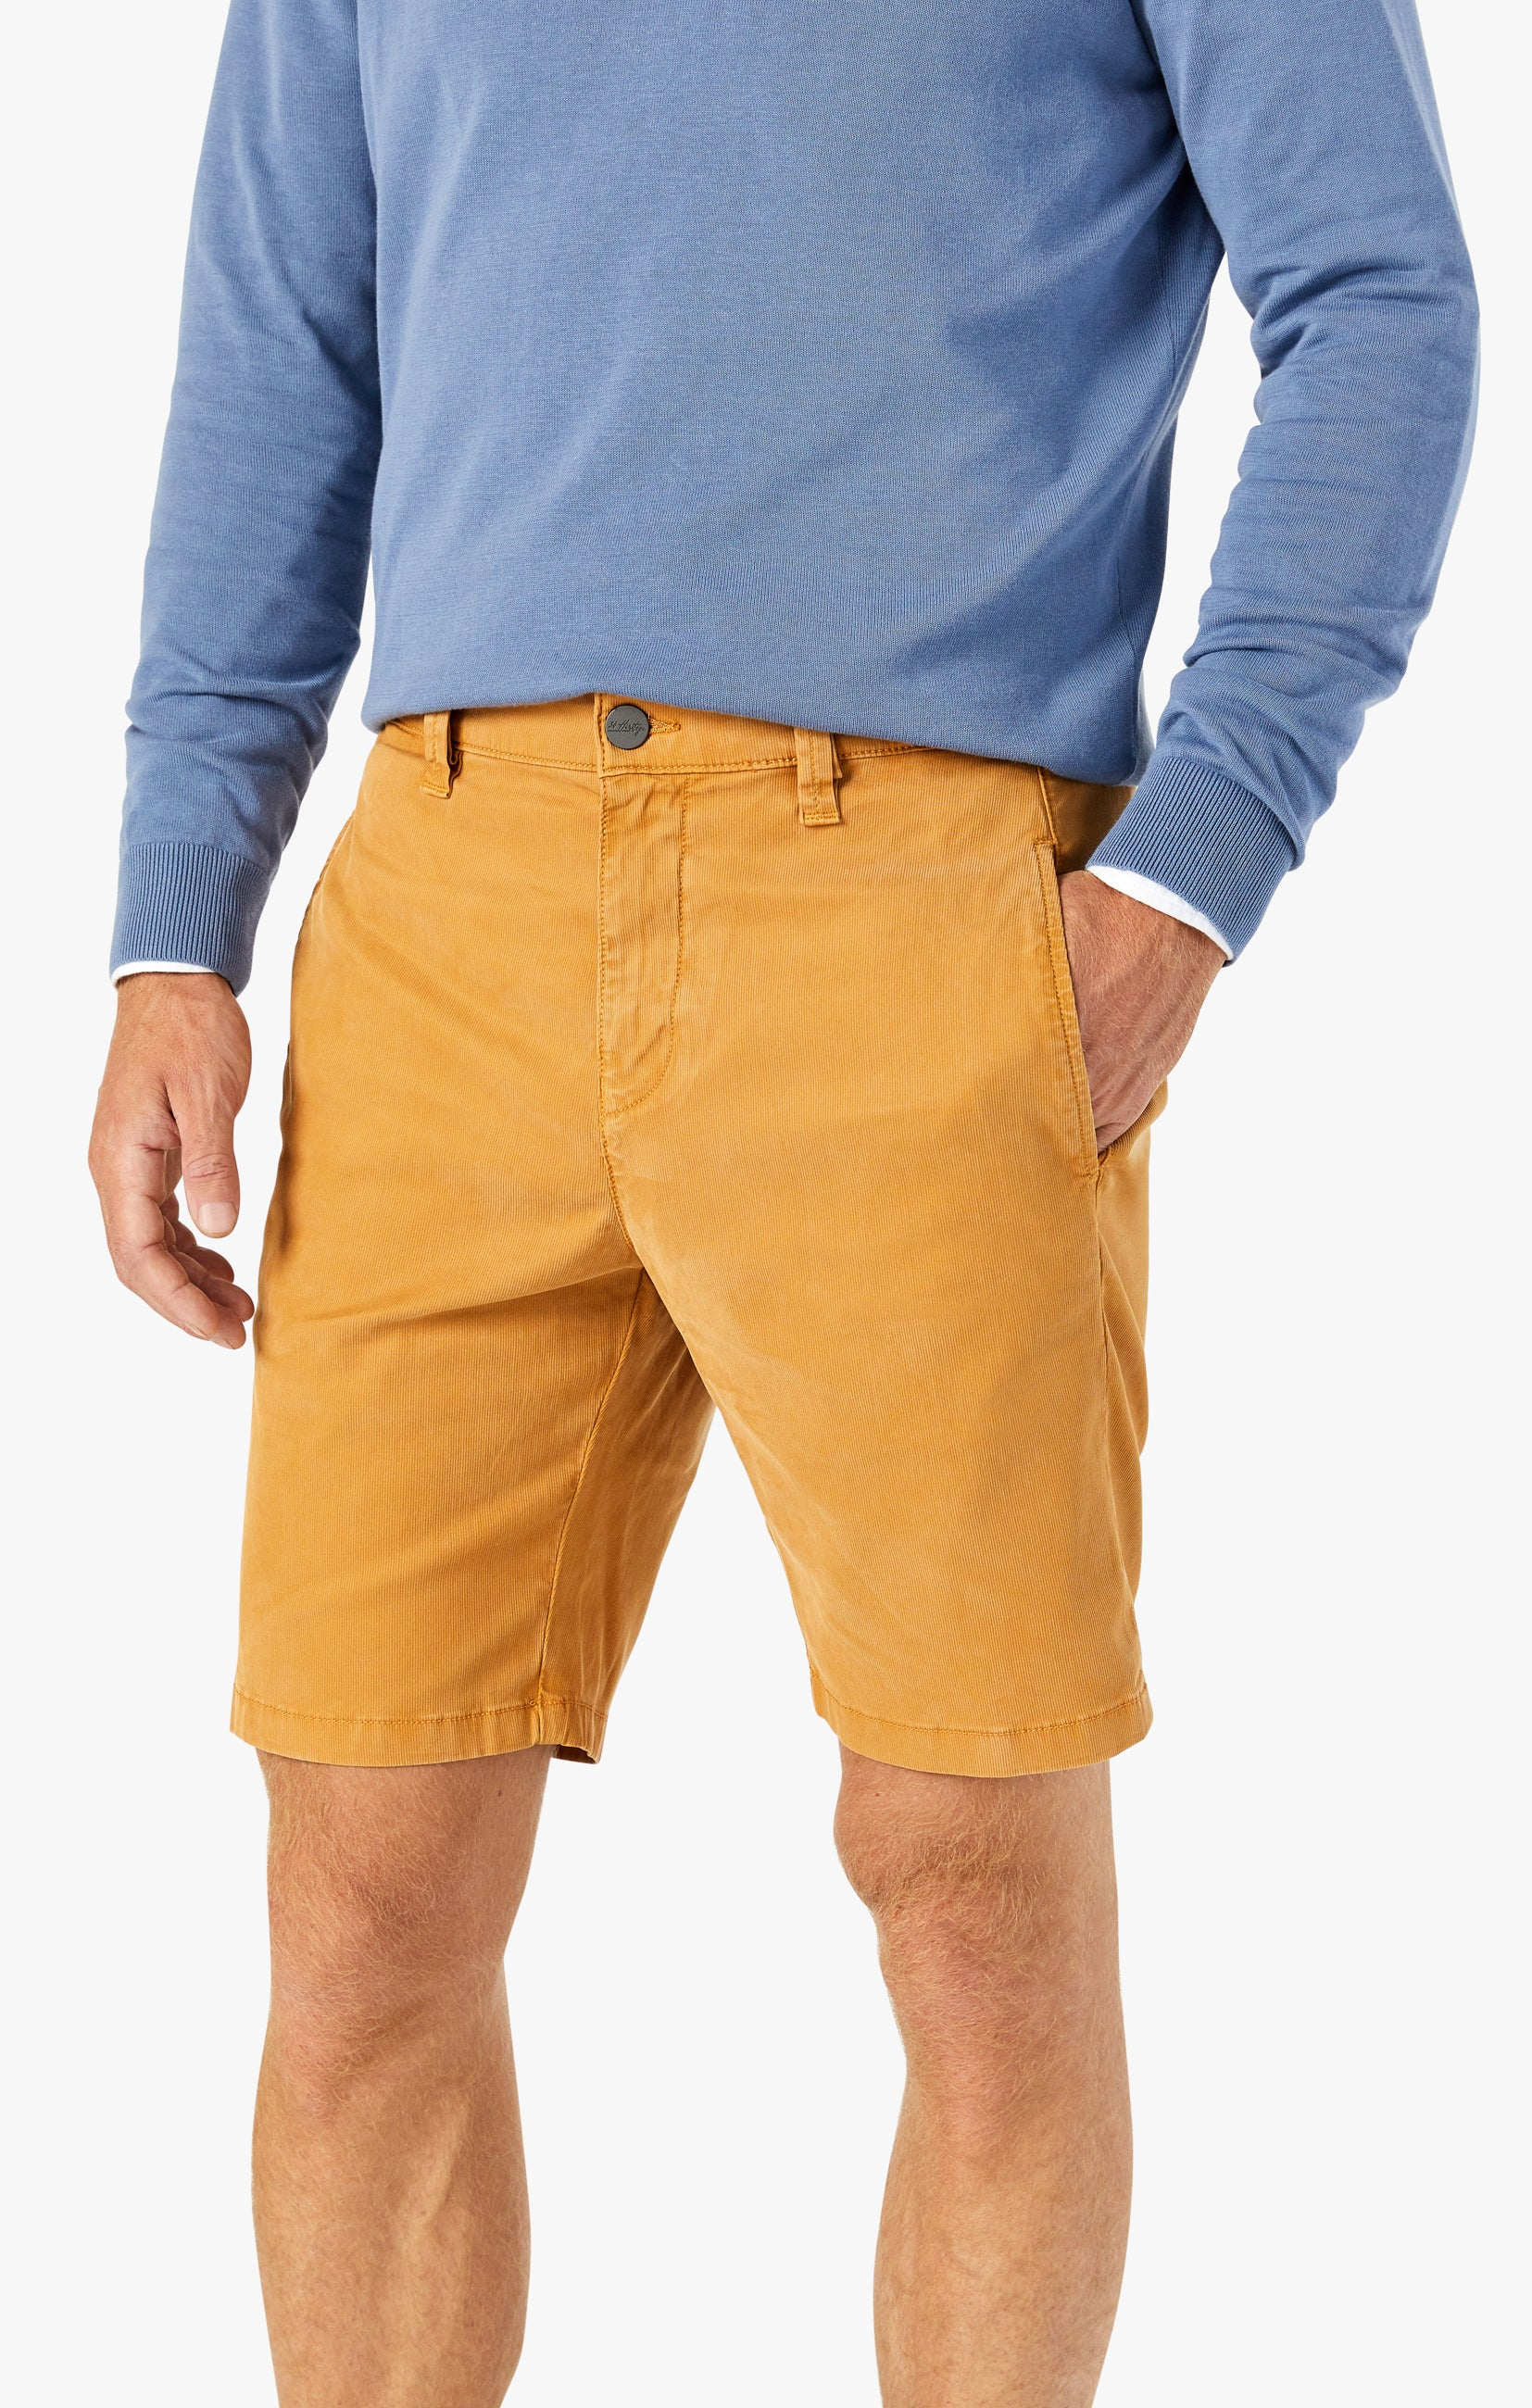 Nevada Shorts in Brown Sugar Fine Touch Image 4